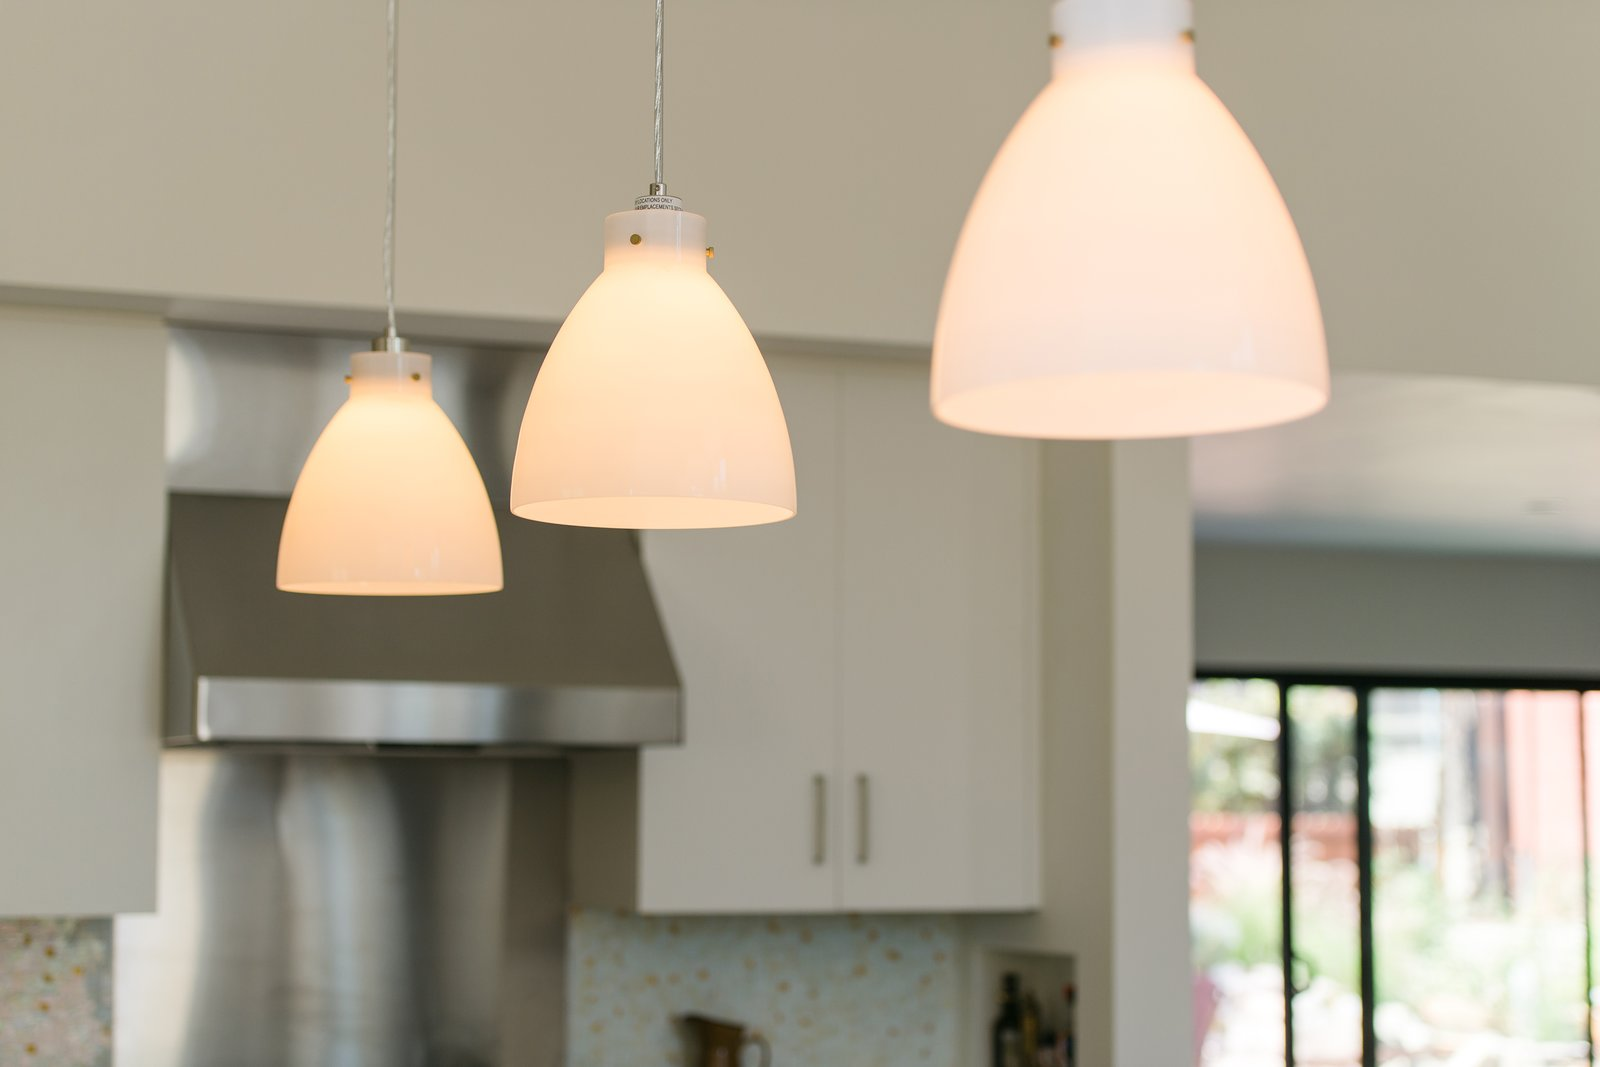 Minimal pendants add warm, intimate lighting at the oversized kitchen island.